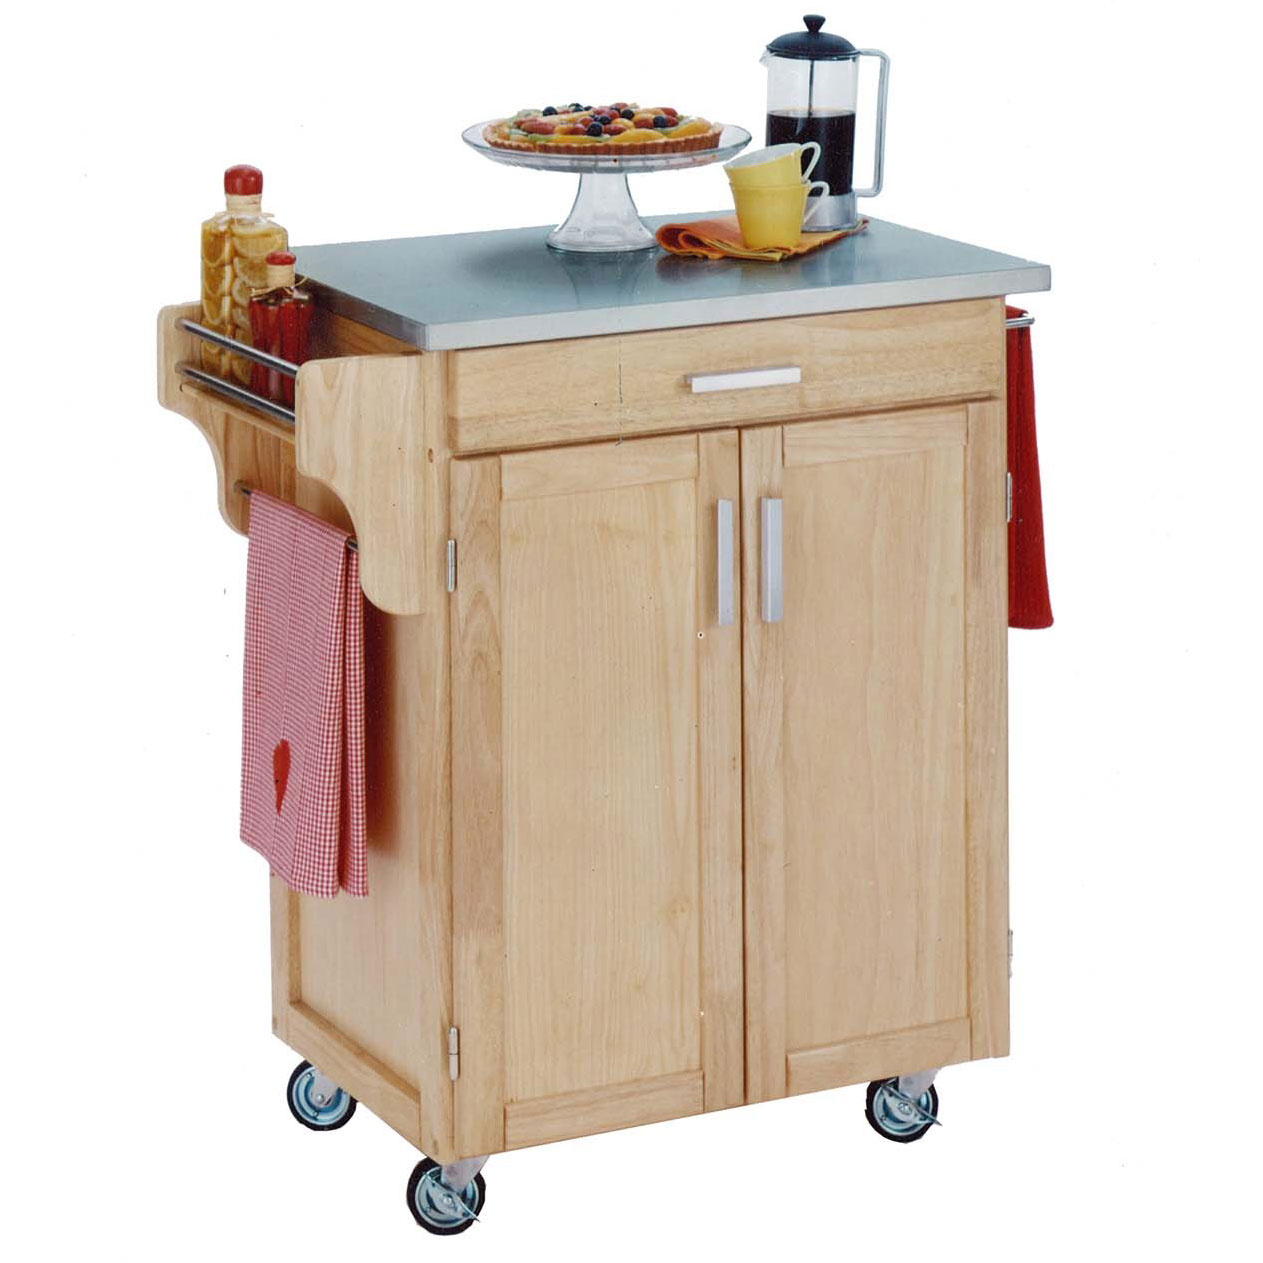 Natural Wood Cuisine Kitchen Cart with Stainless Steel Top, NATURAL STAINLESS STEEL